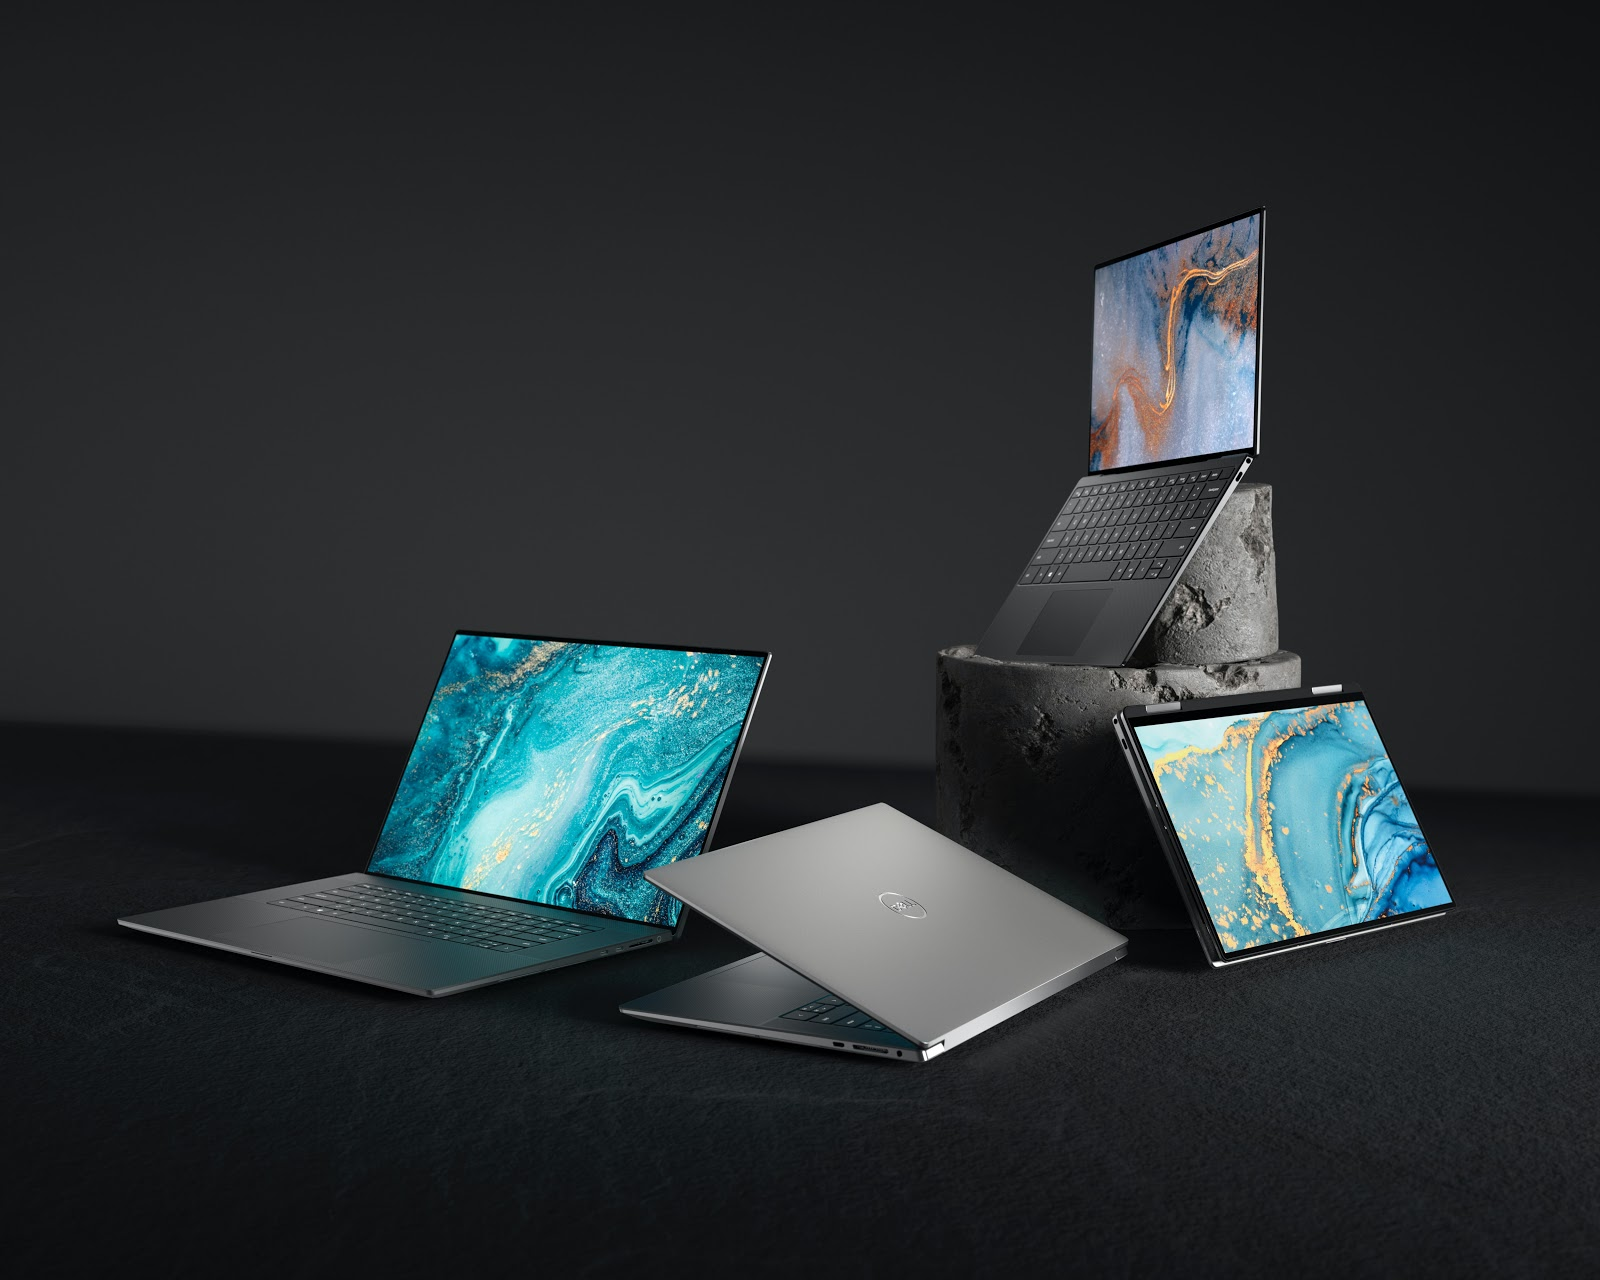 open laptops with marble screen savers on a black background